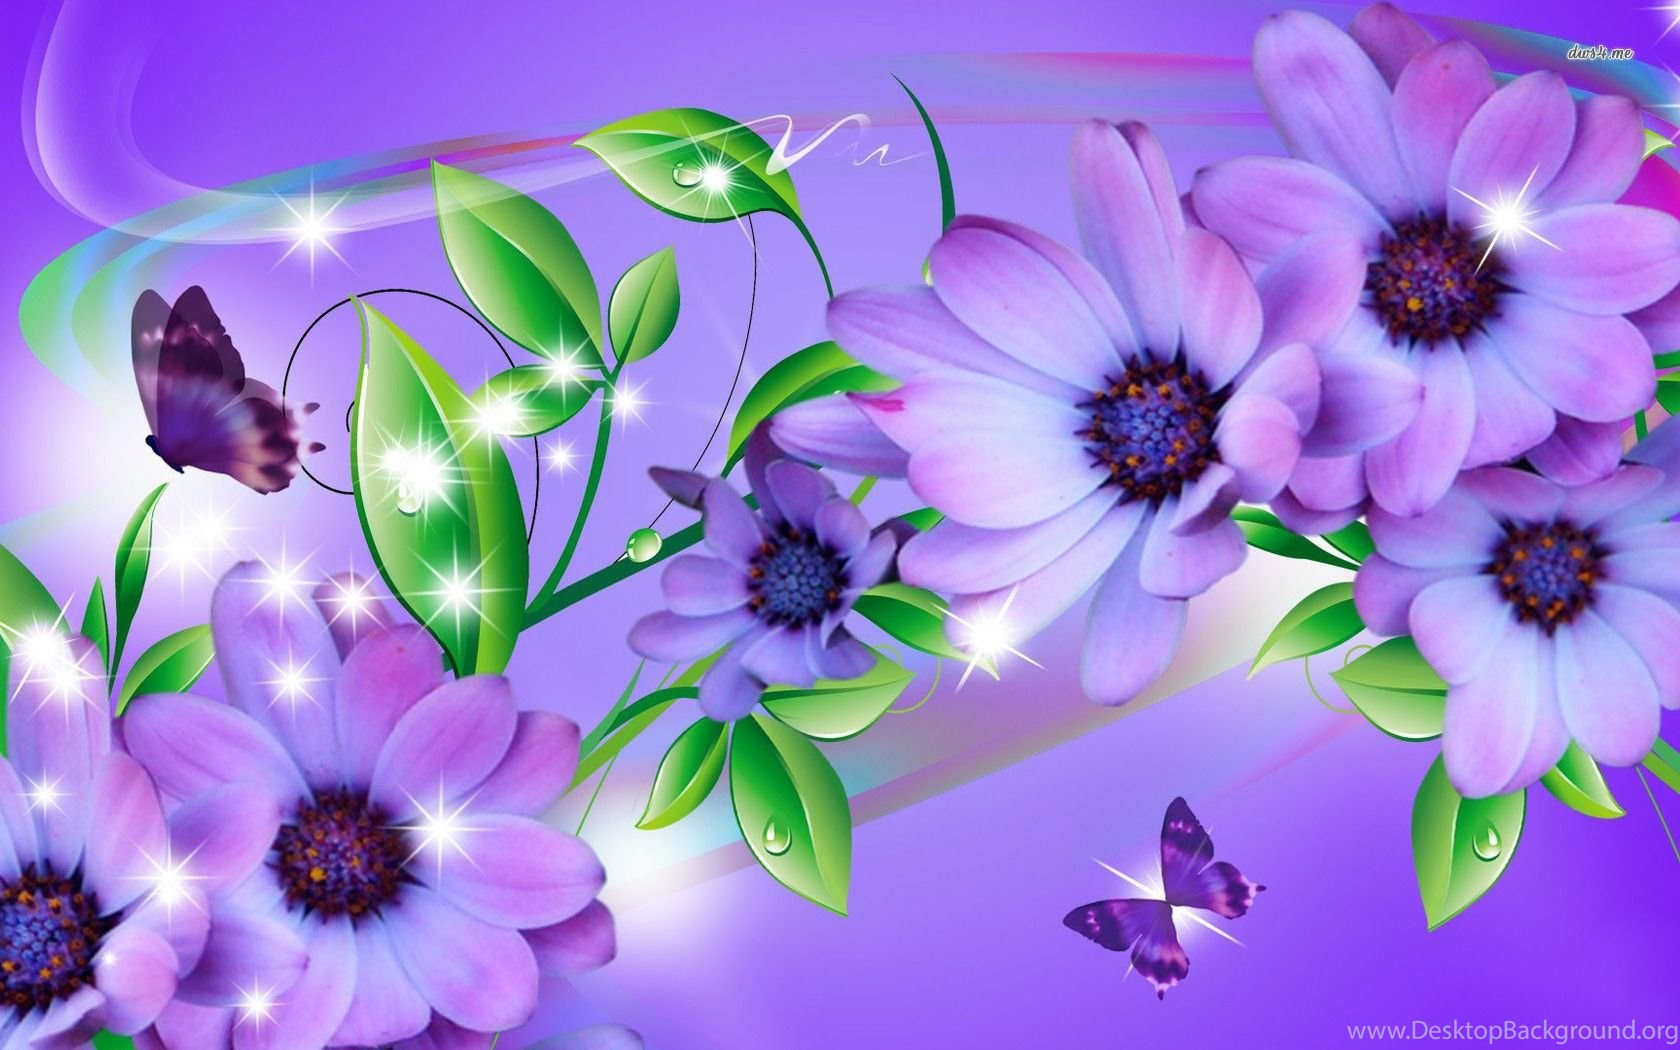 butterfly on purple flowers wallpapers digital art